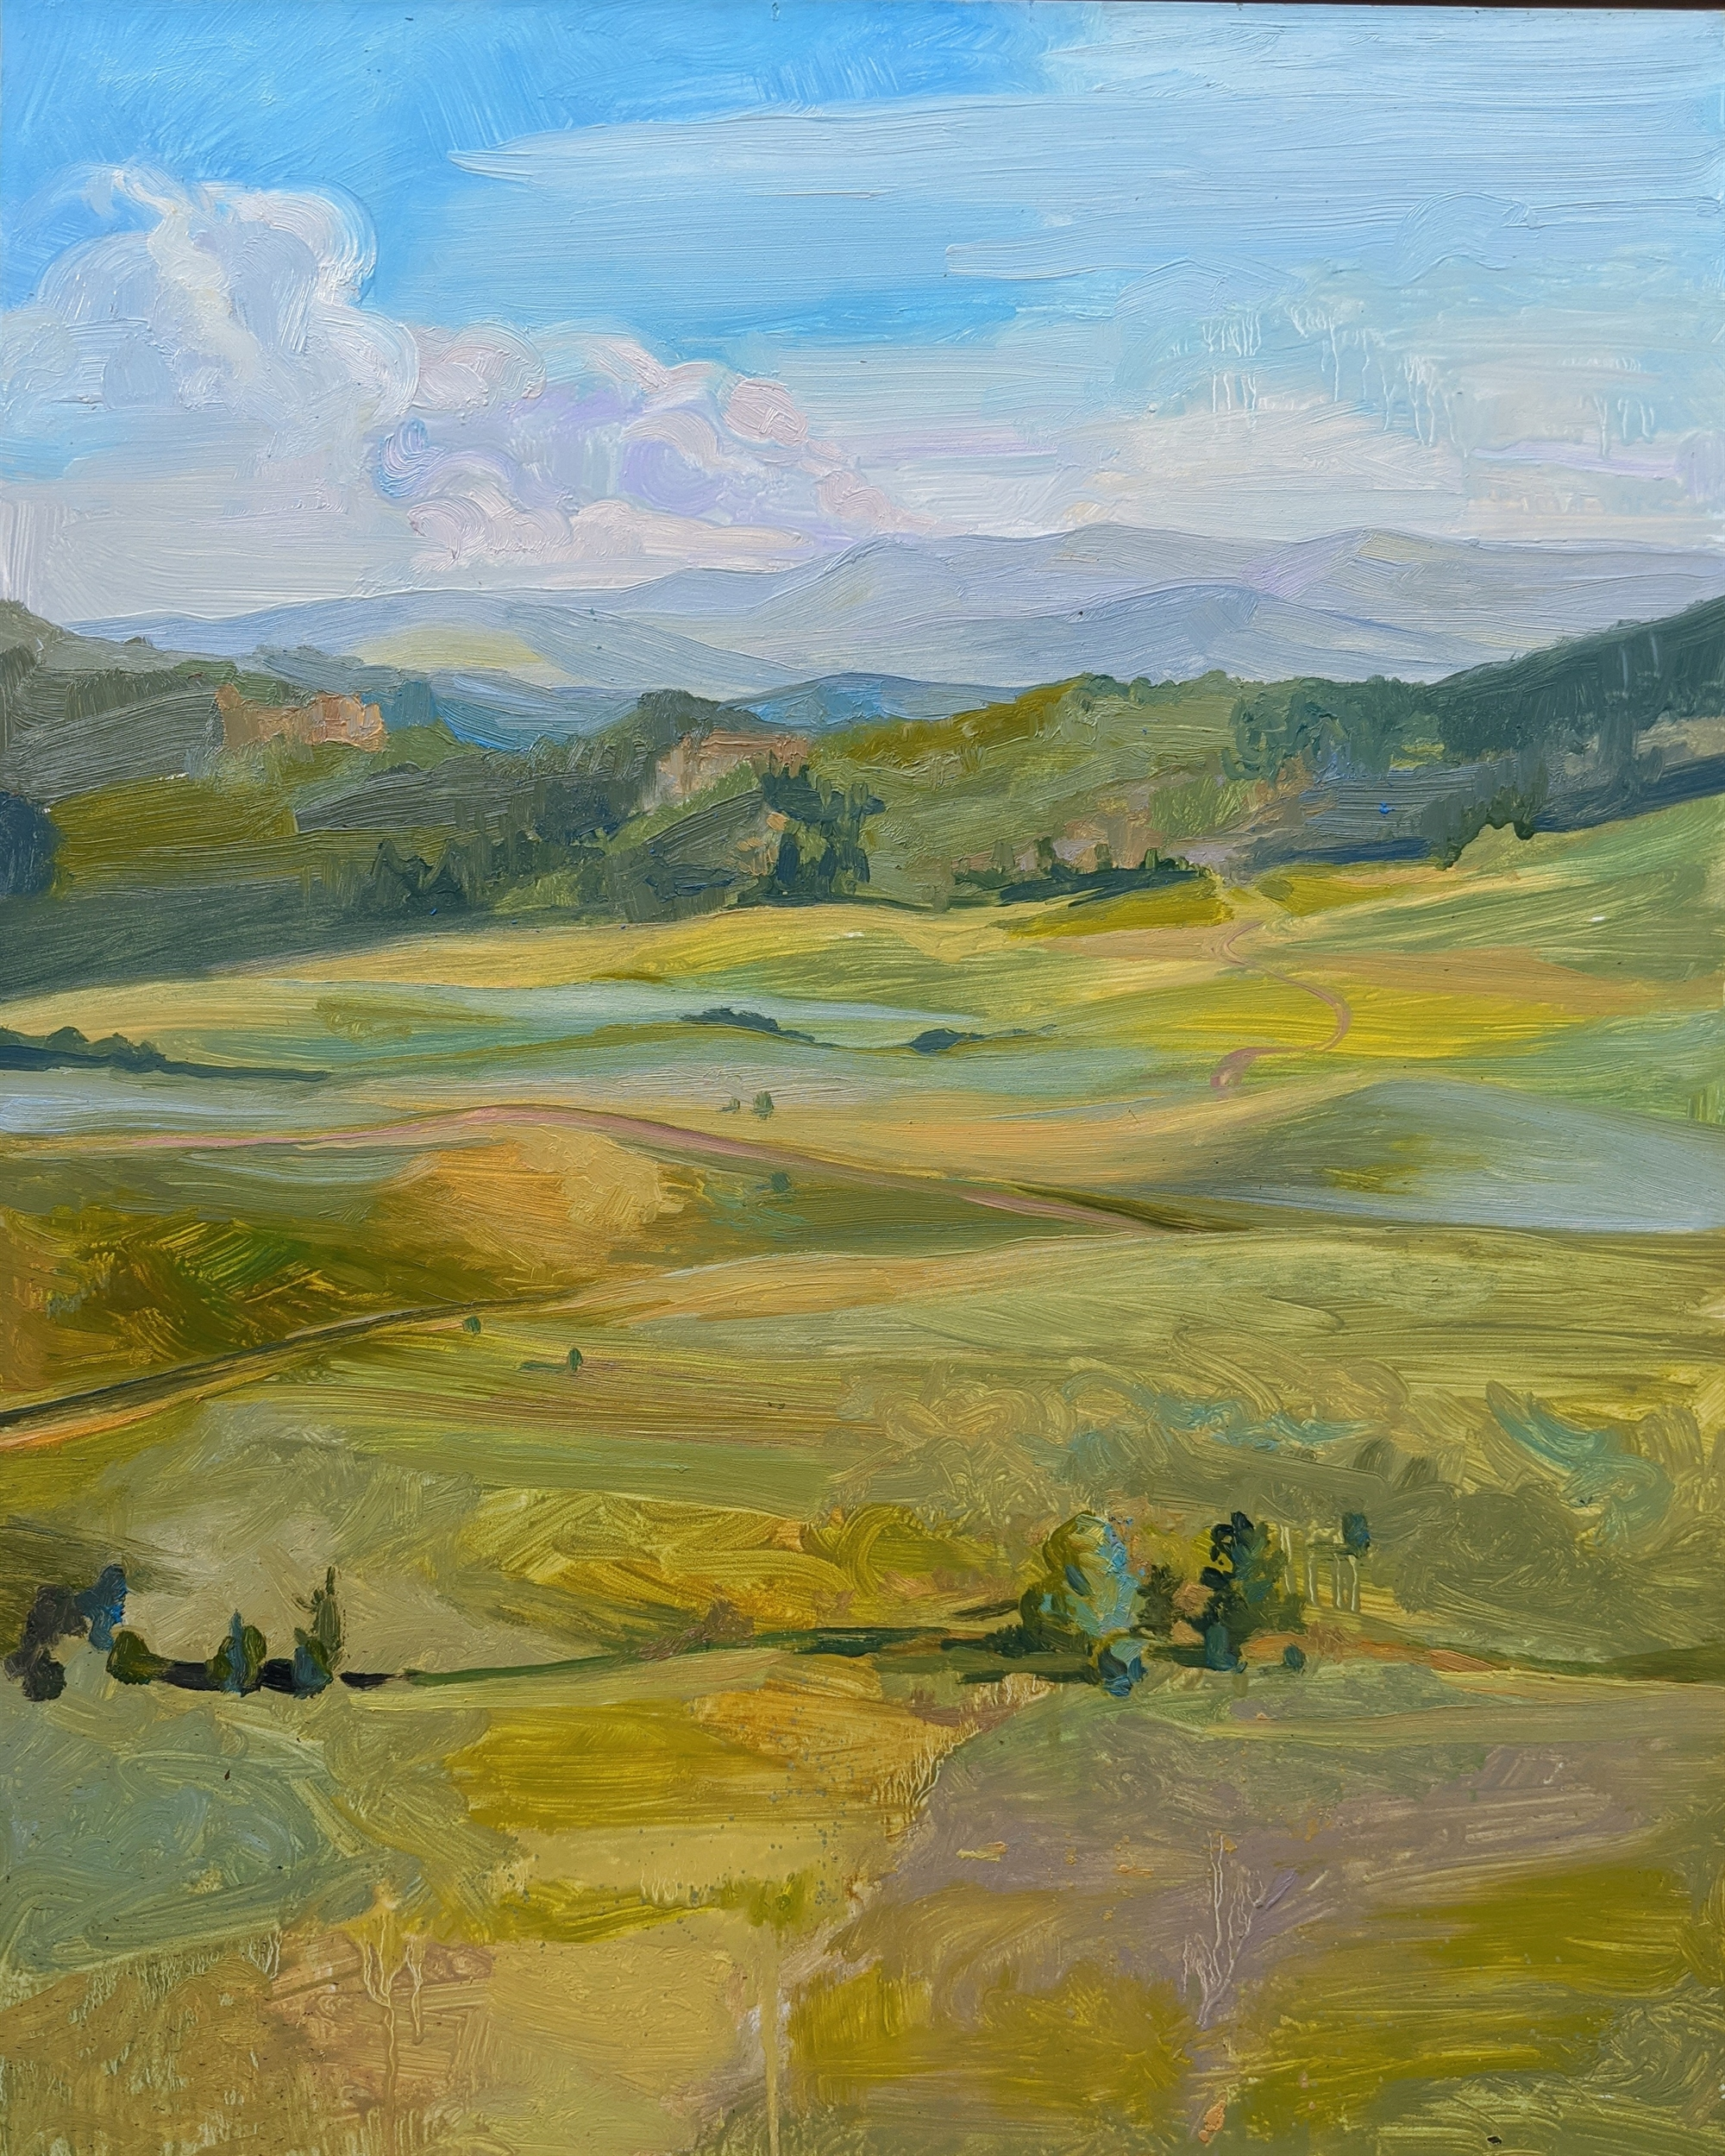 View Of The Meadow And The Rockies Beyond by Charis Carmichael Braun